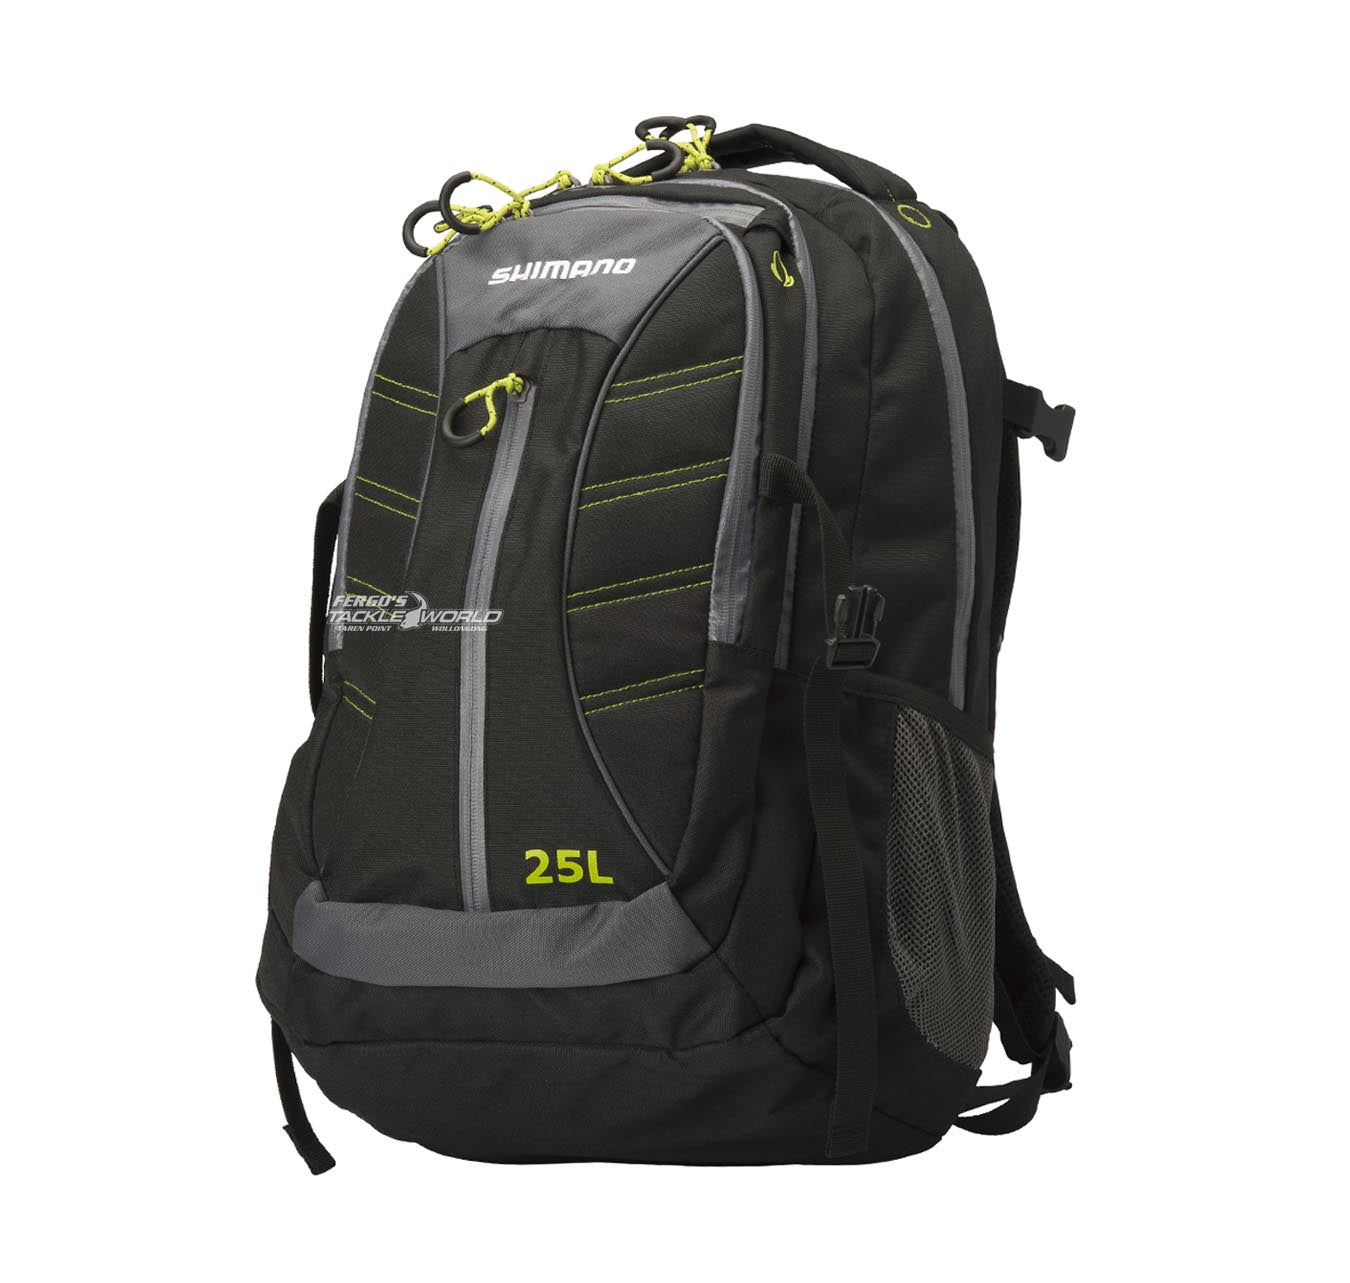 Shimano Backpack 25L